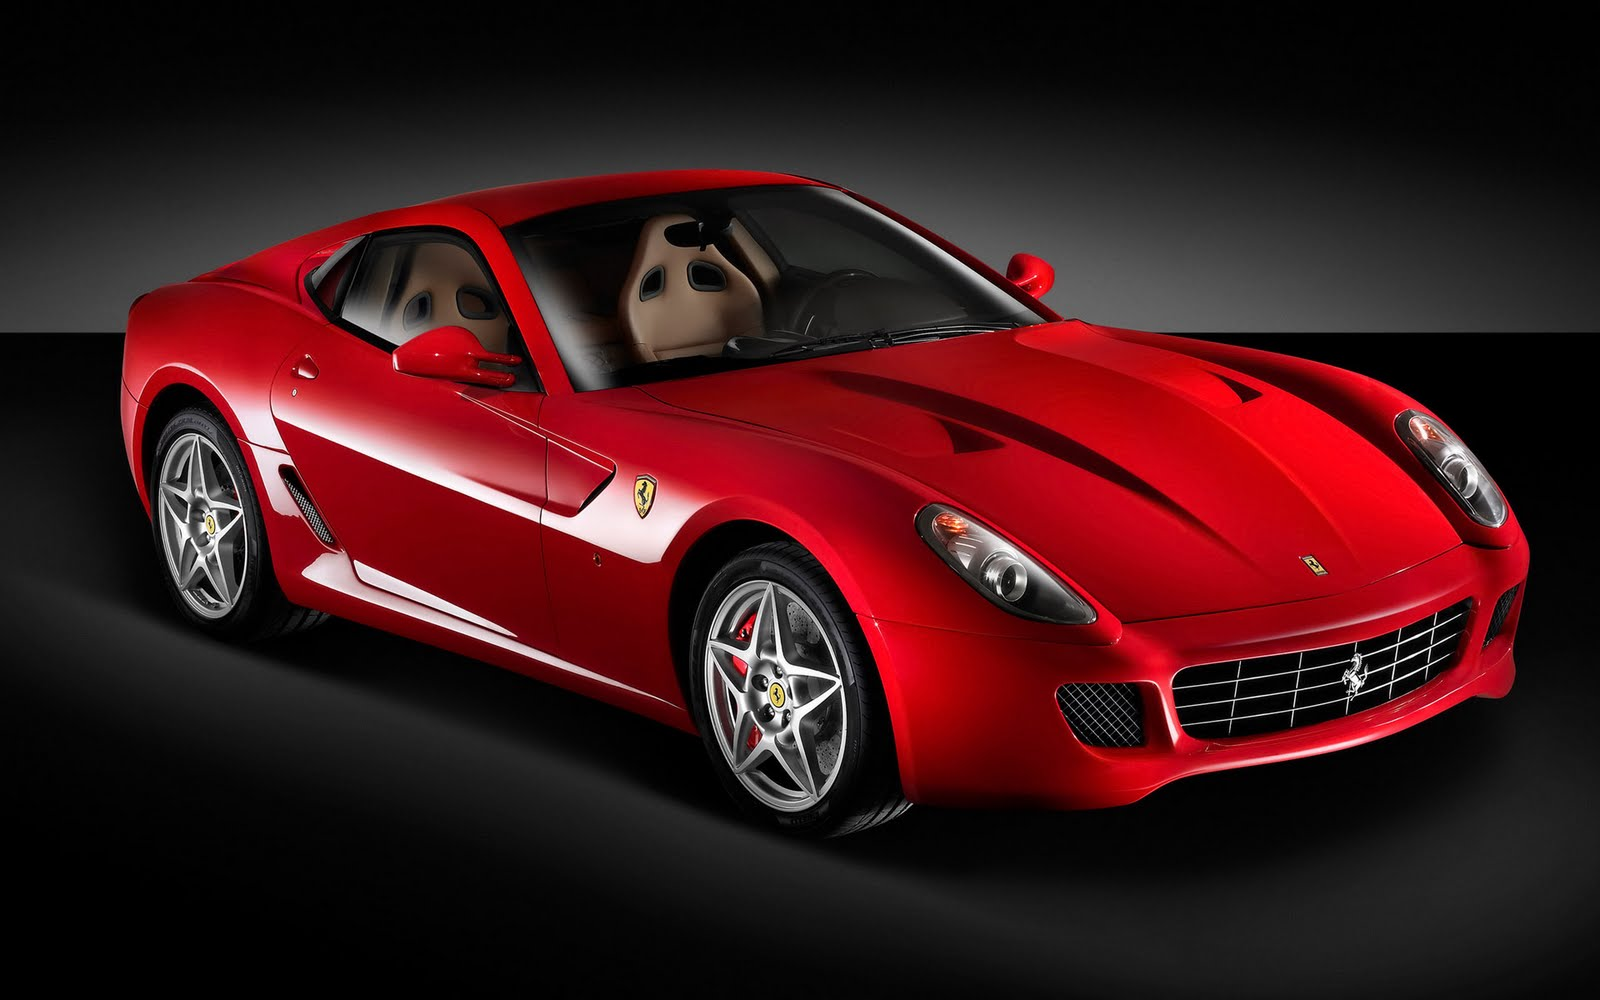 High Resolution Car Images - Ferrari